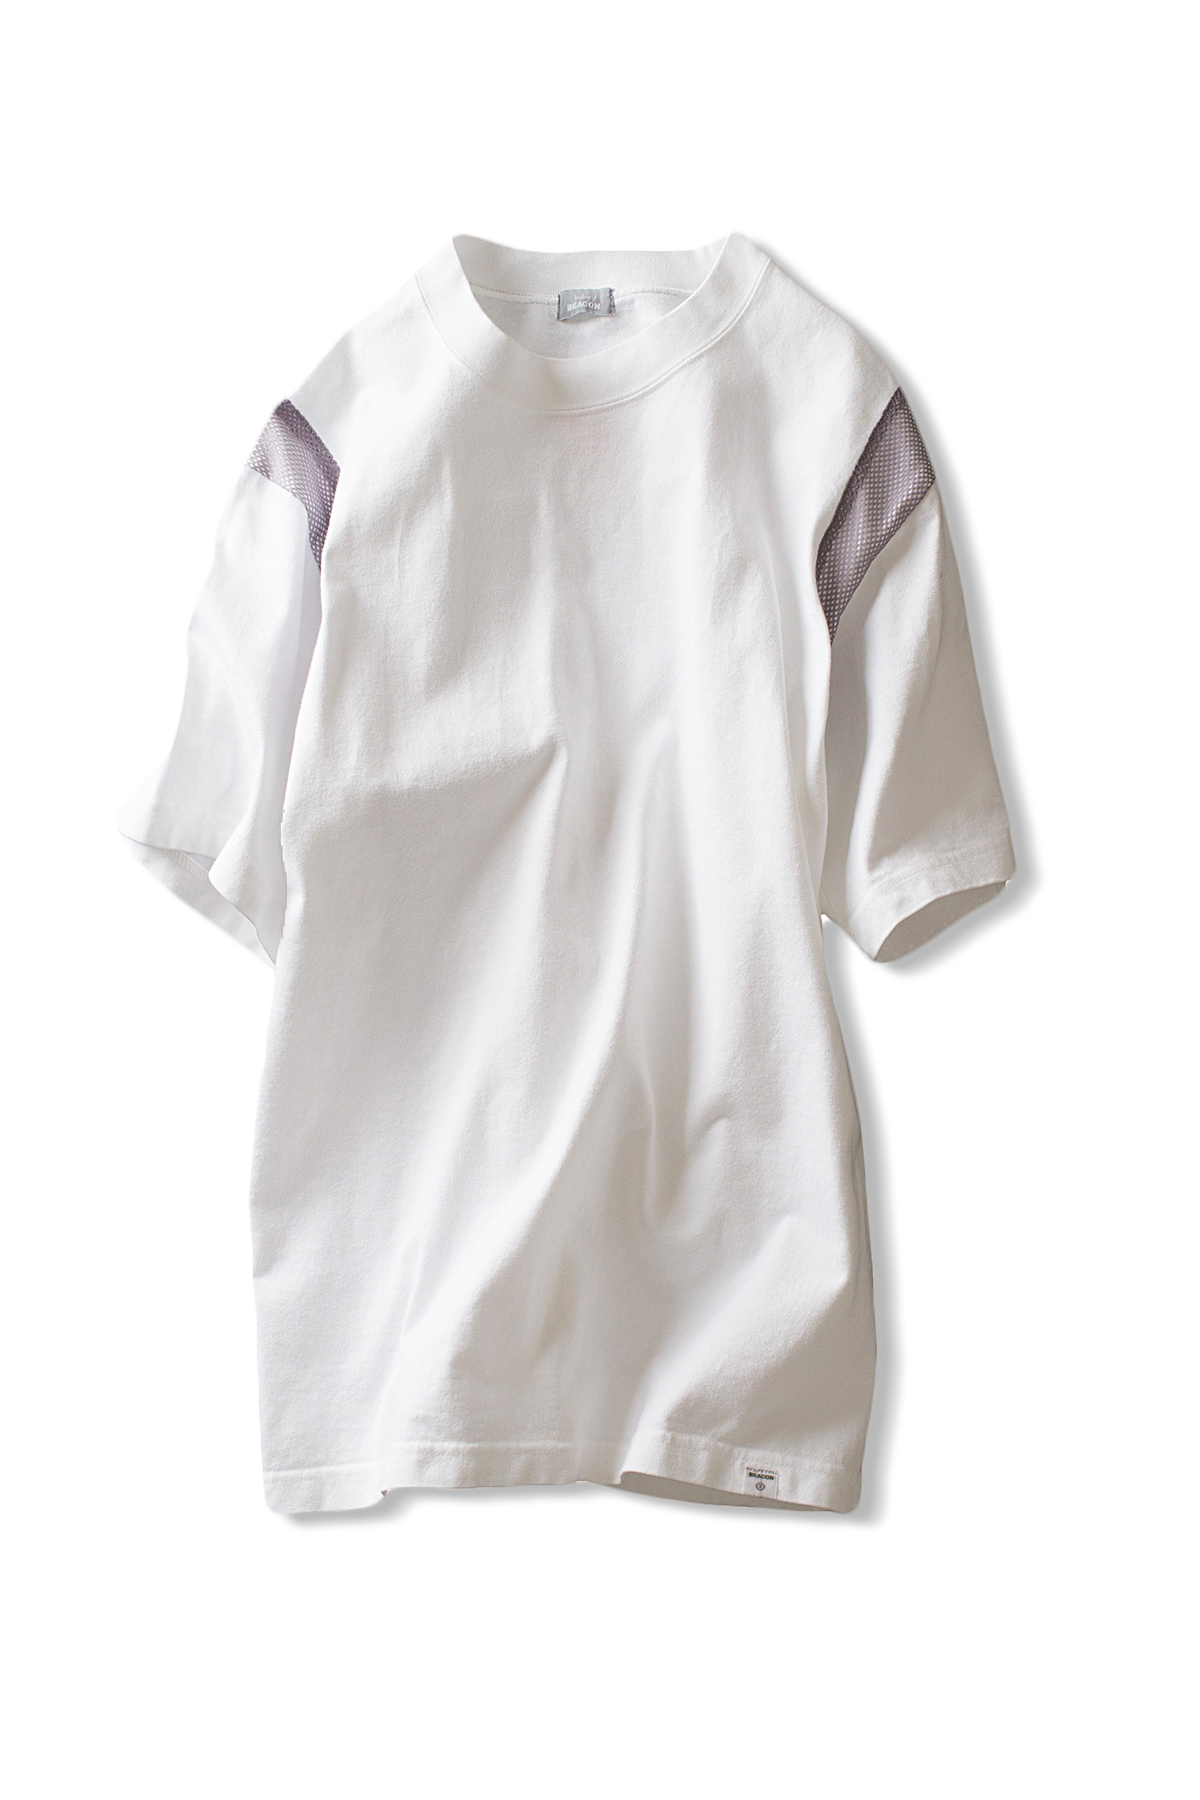 kolor / BEACON : Mesh Lined Tee (Fluorescent White)